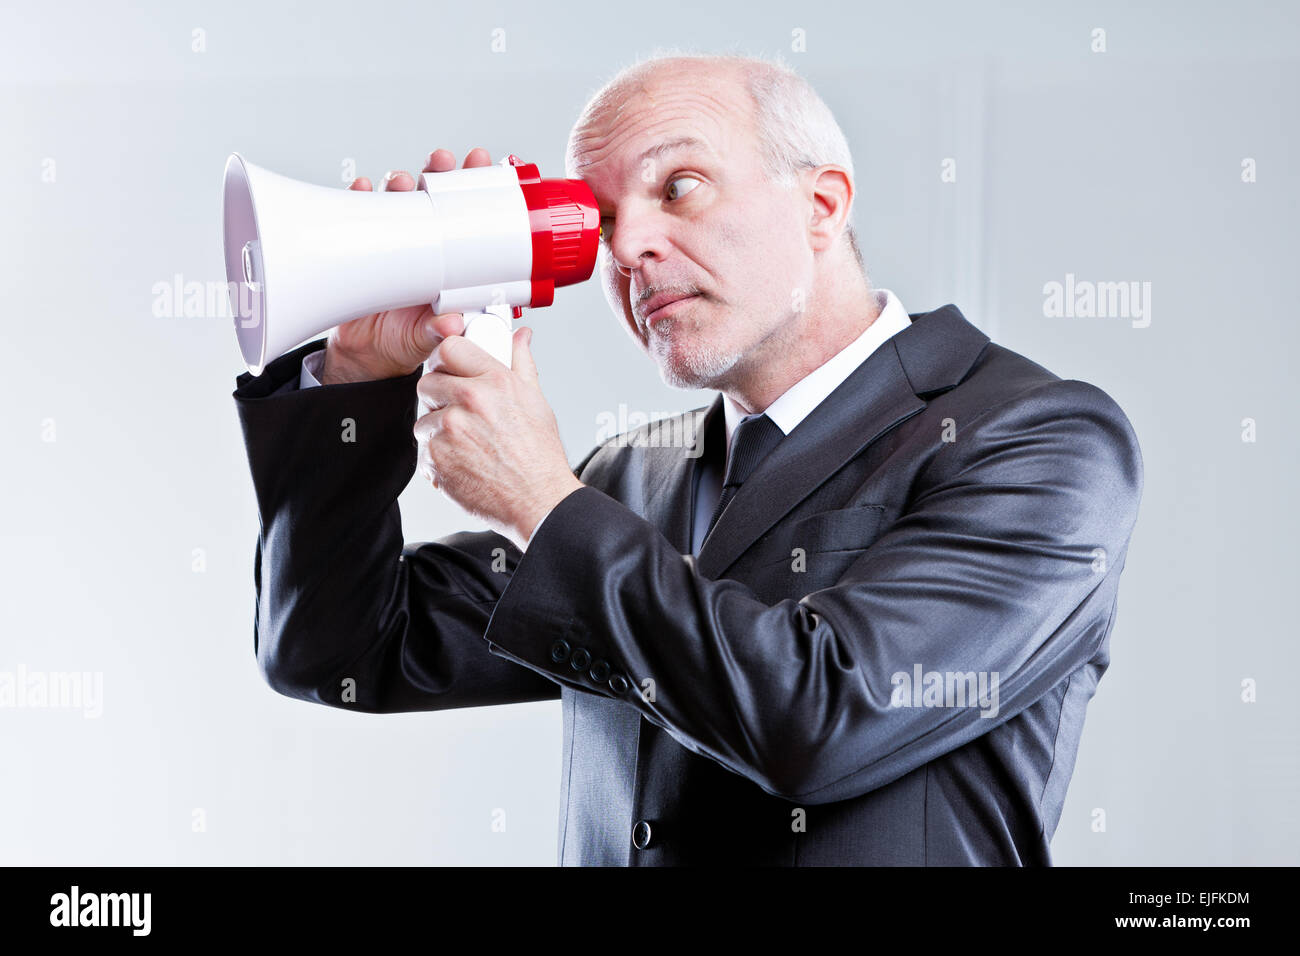 man using a megaphone in an unfitting way - Stock Image